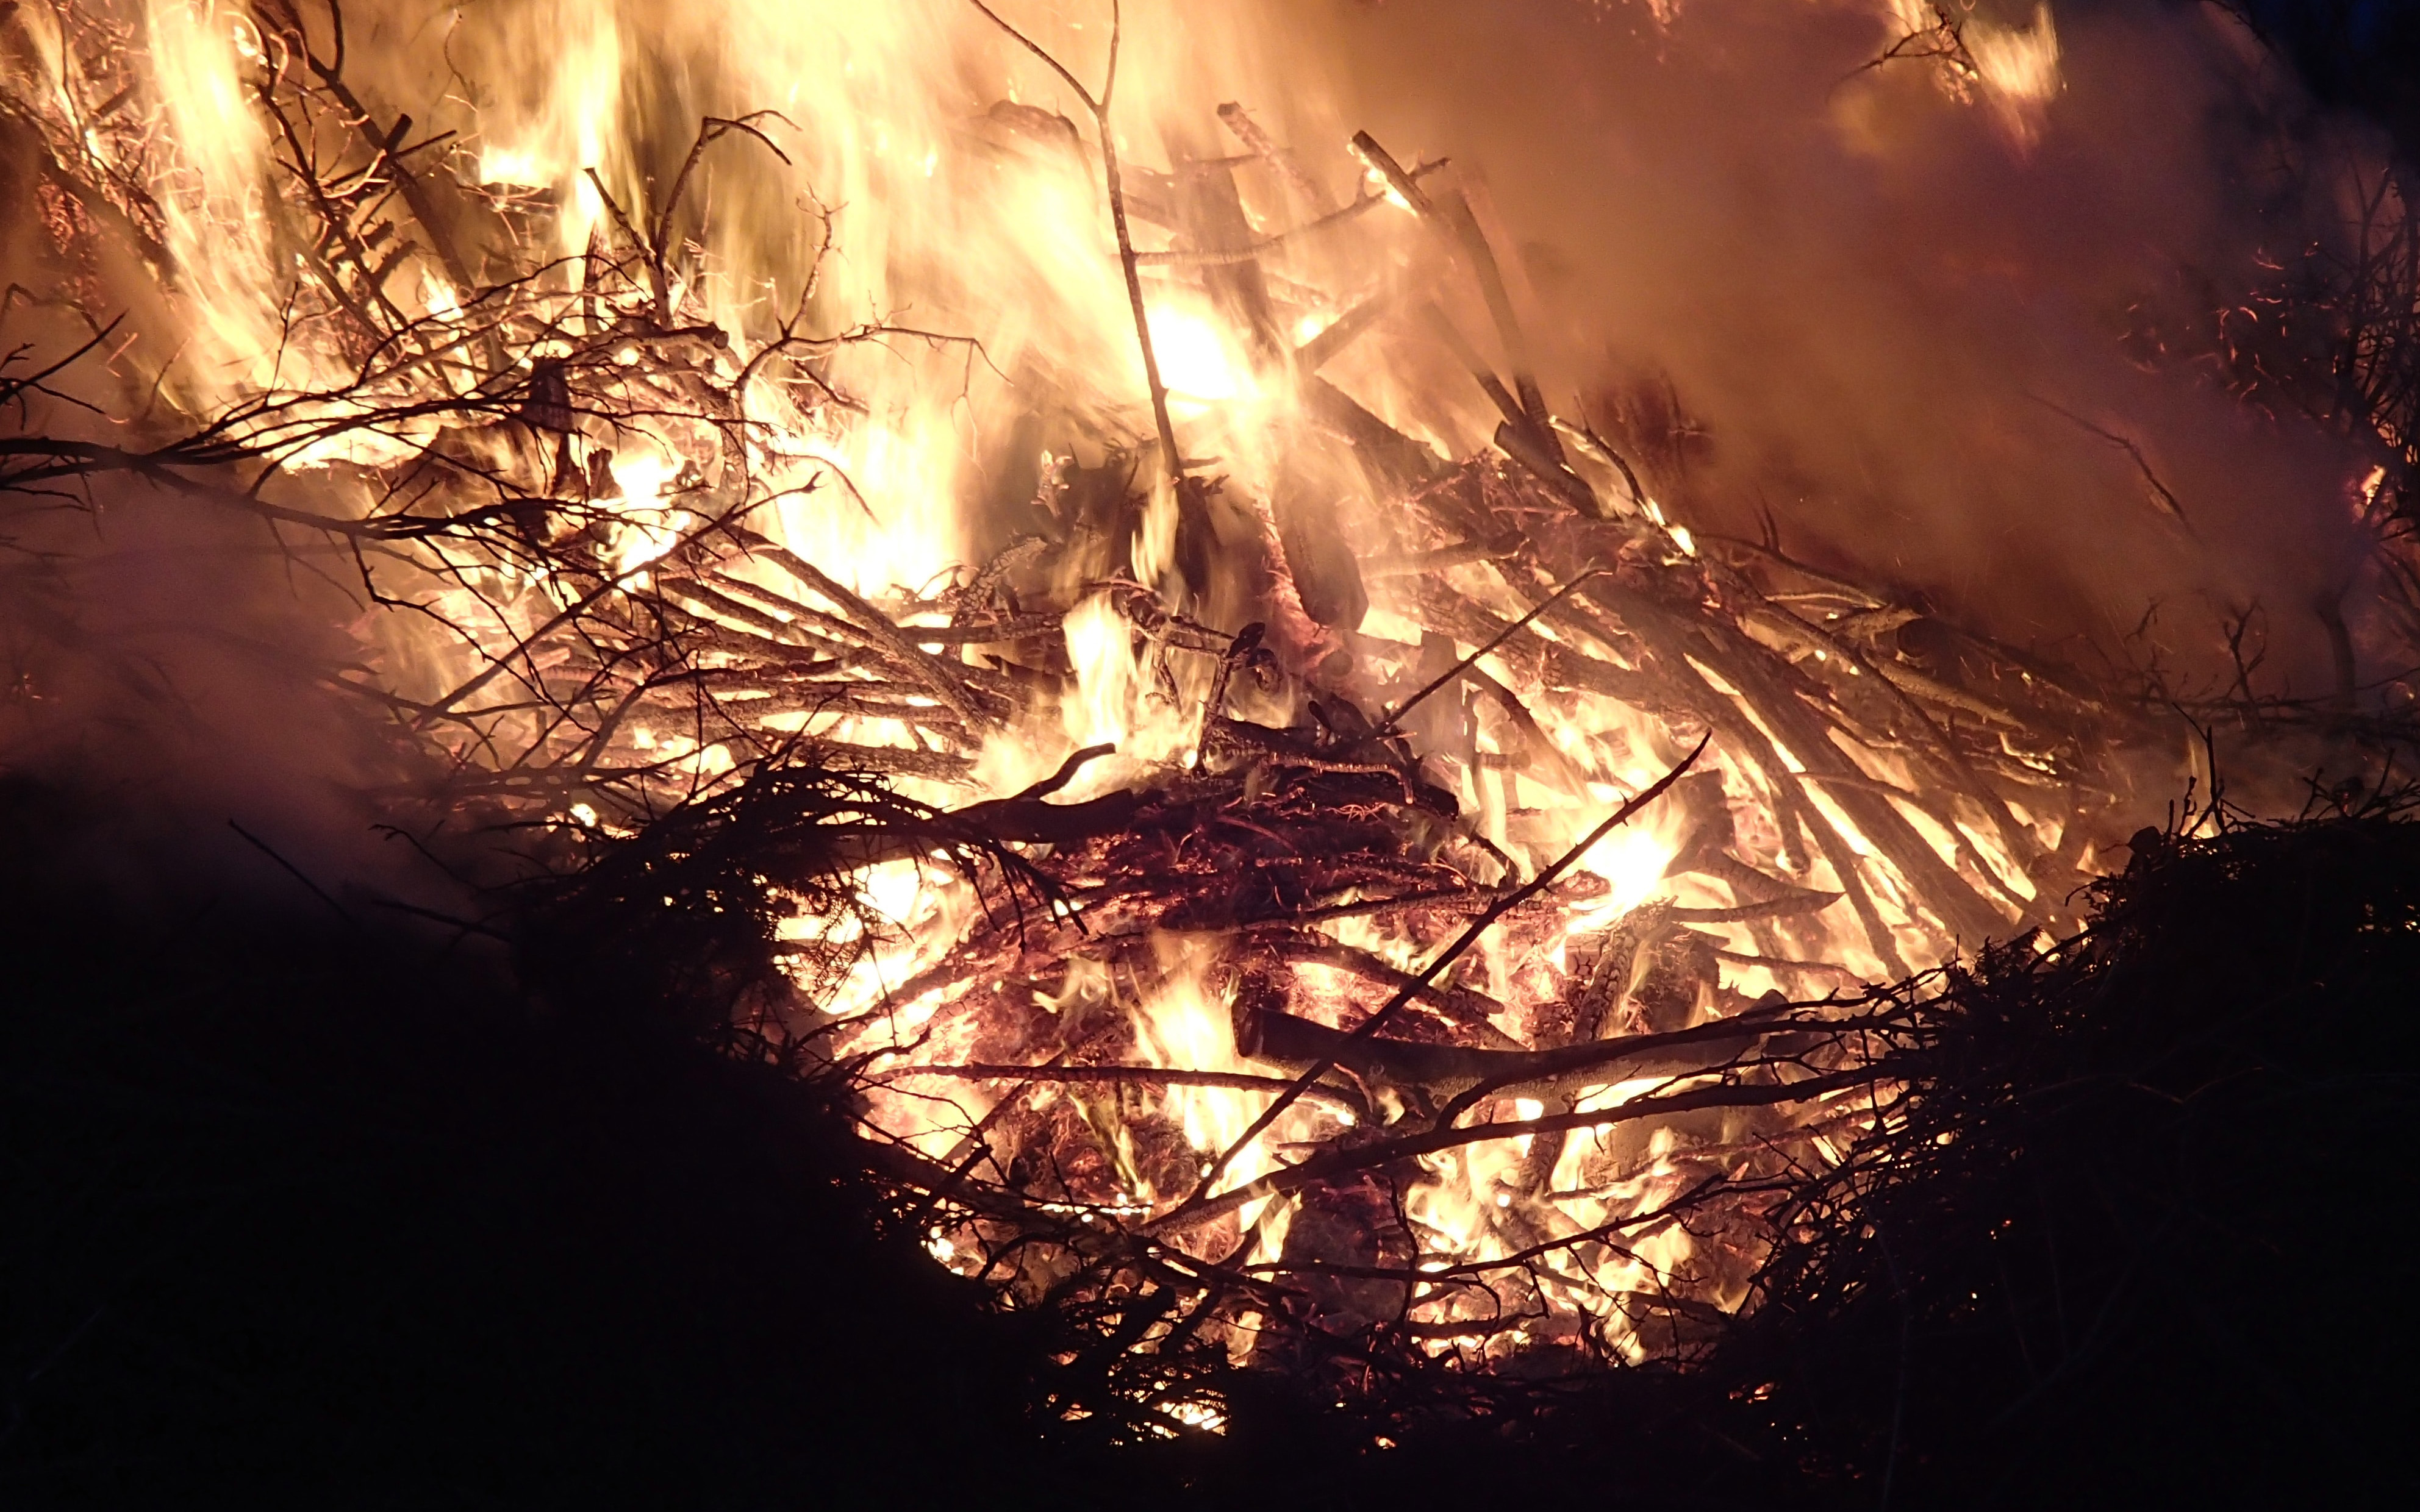 Sticks and logs burning in a fire